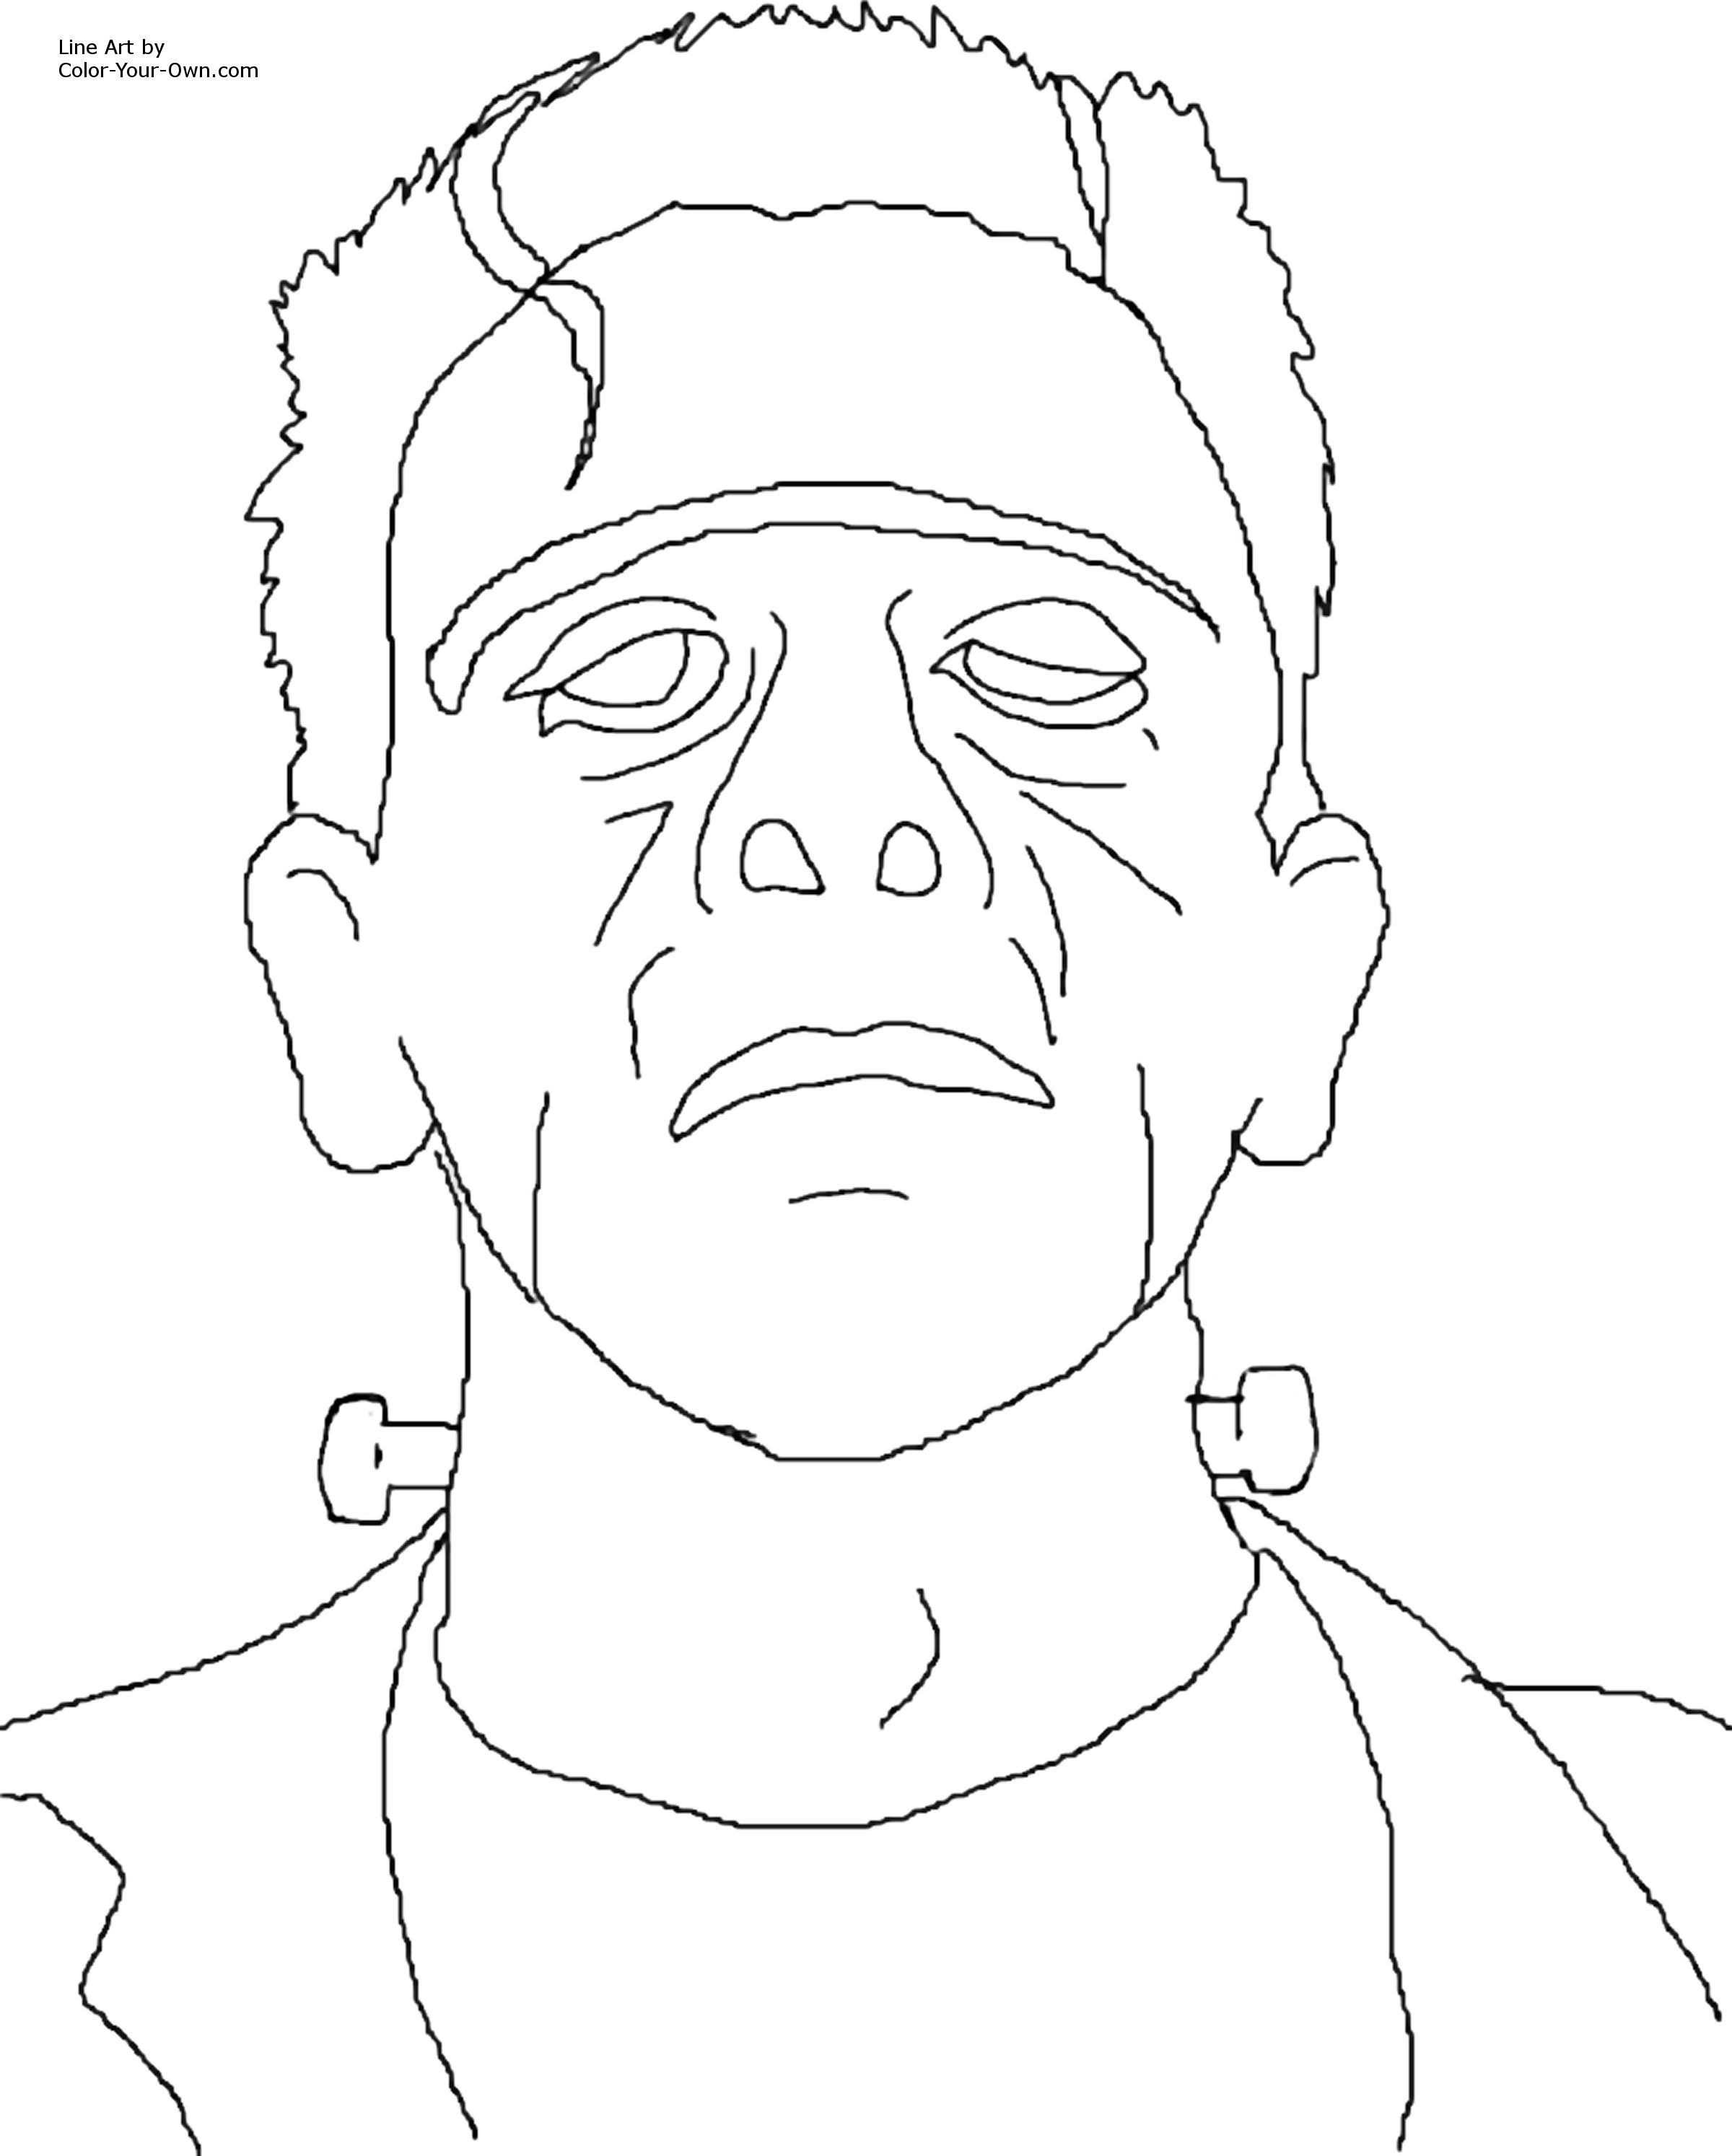 frankenstein coloring book pages plaid stallions rambling and reflections on 3970s pop book frankenstein coloring pages